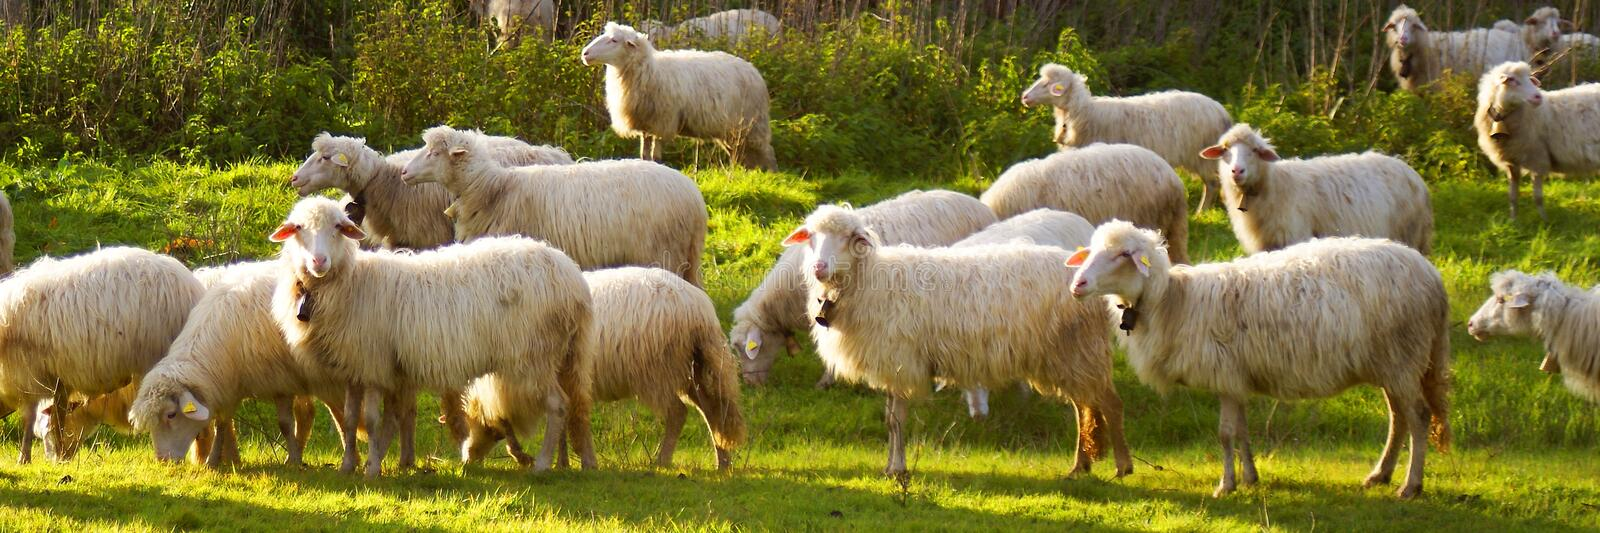 Download Sheep stock photo. Image of keep, flock, road, green - 17577858